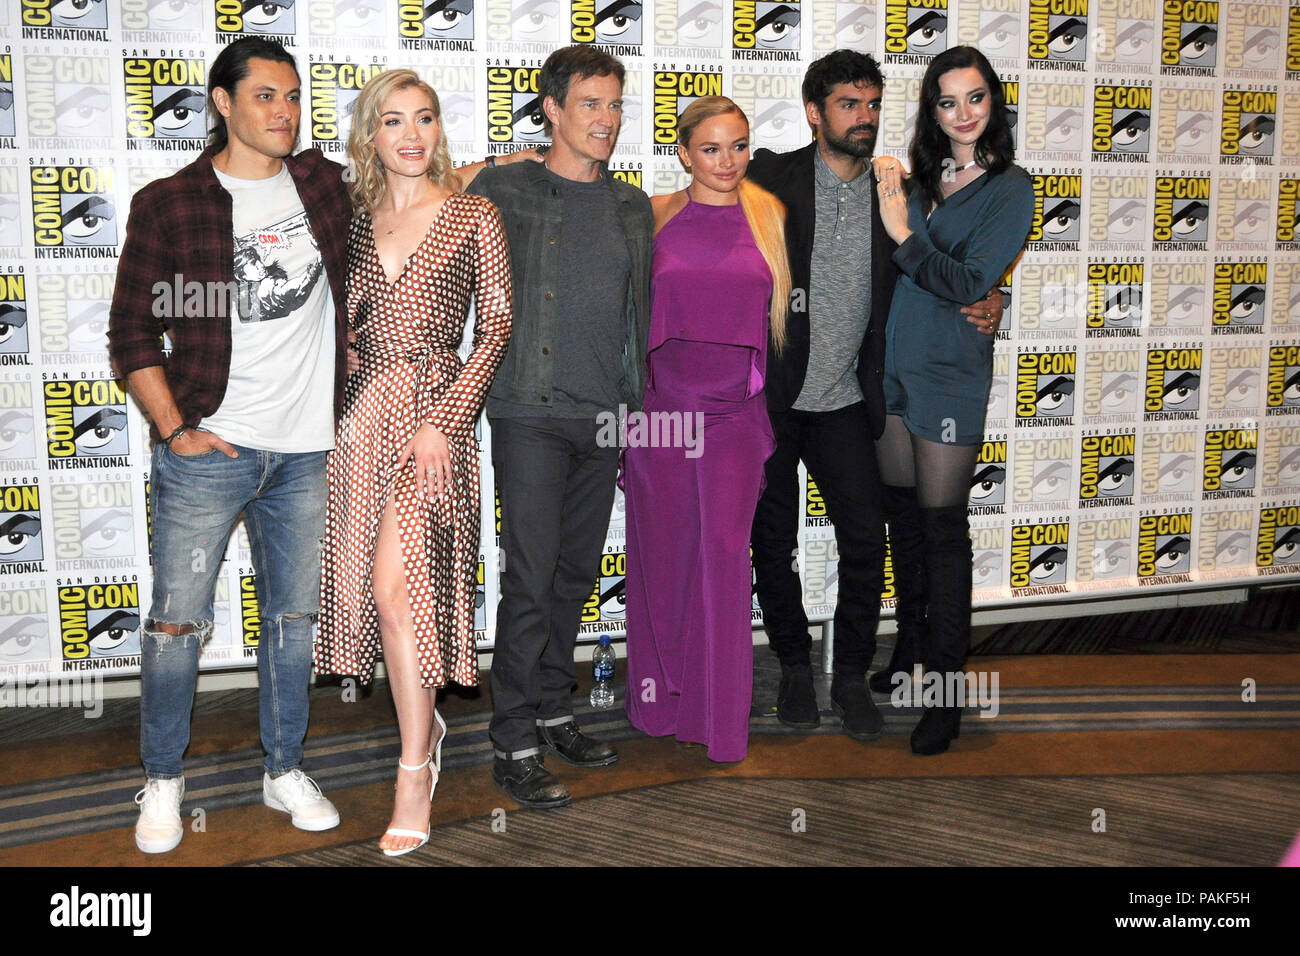 San Diego, USA. 21st July, 2018. Blair Redford, Skyler Samuels, Stephen Moyer, Natalie Alyn Lind, Sean Teale and Emma Dumont at the Photocall for the Fox TV series 'The Gifted' at the San Diego Comic-Con International 2018 at the Hilton Bayfront hotel. San Diego, 21.07.2018 | usage worldwide Credit: dpa/Alamy Live News - Stock Image